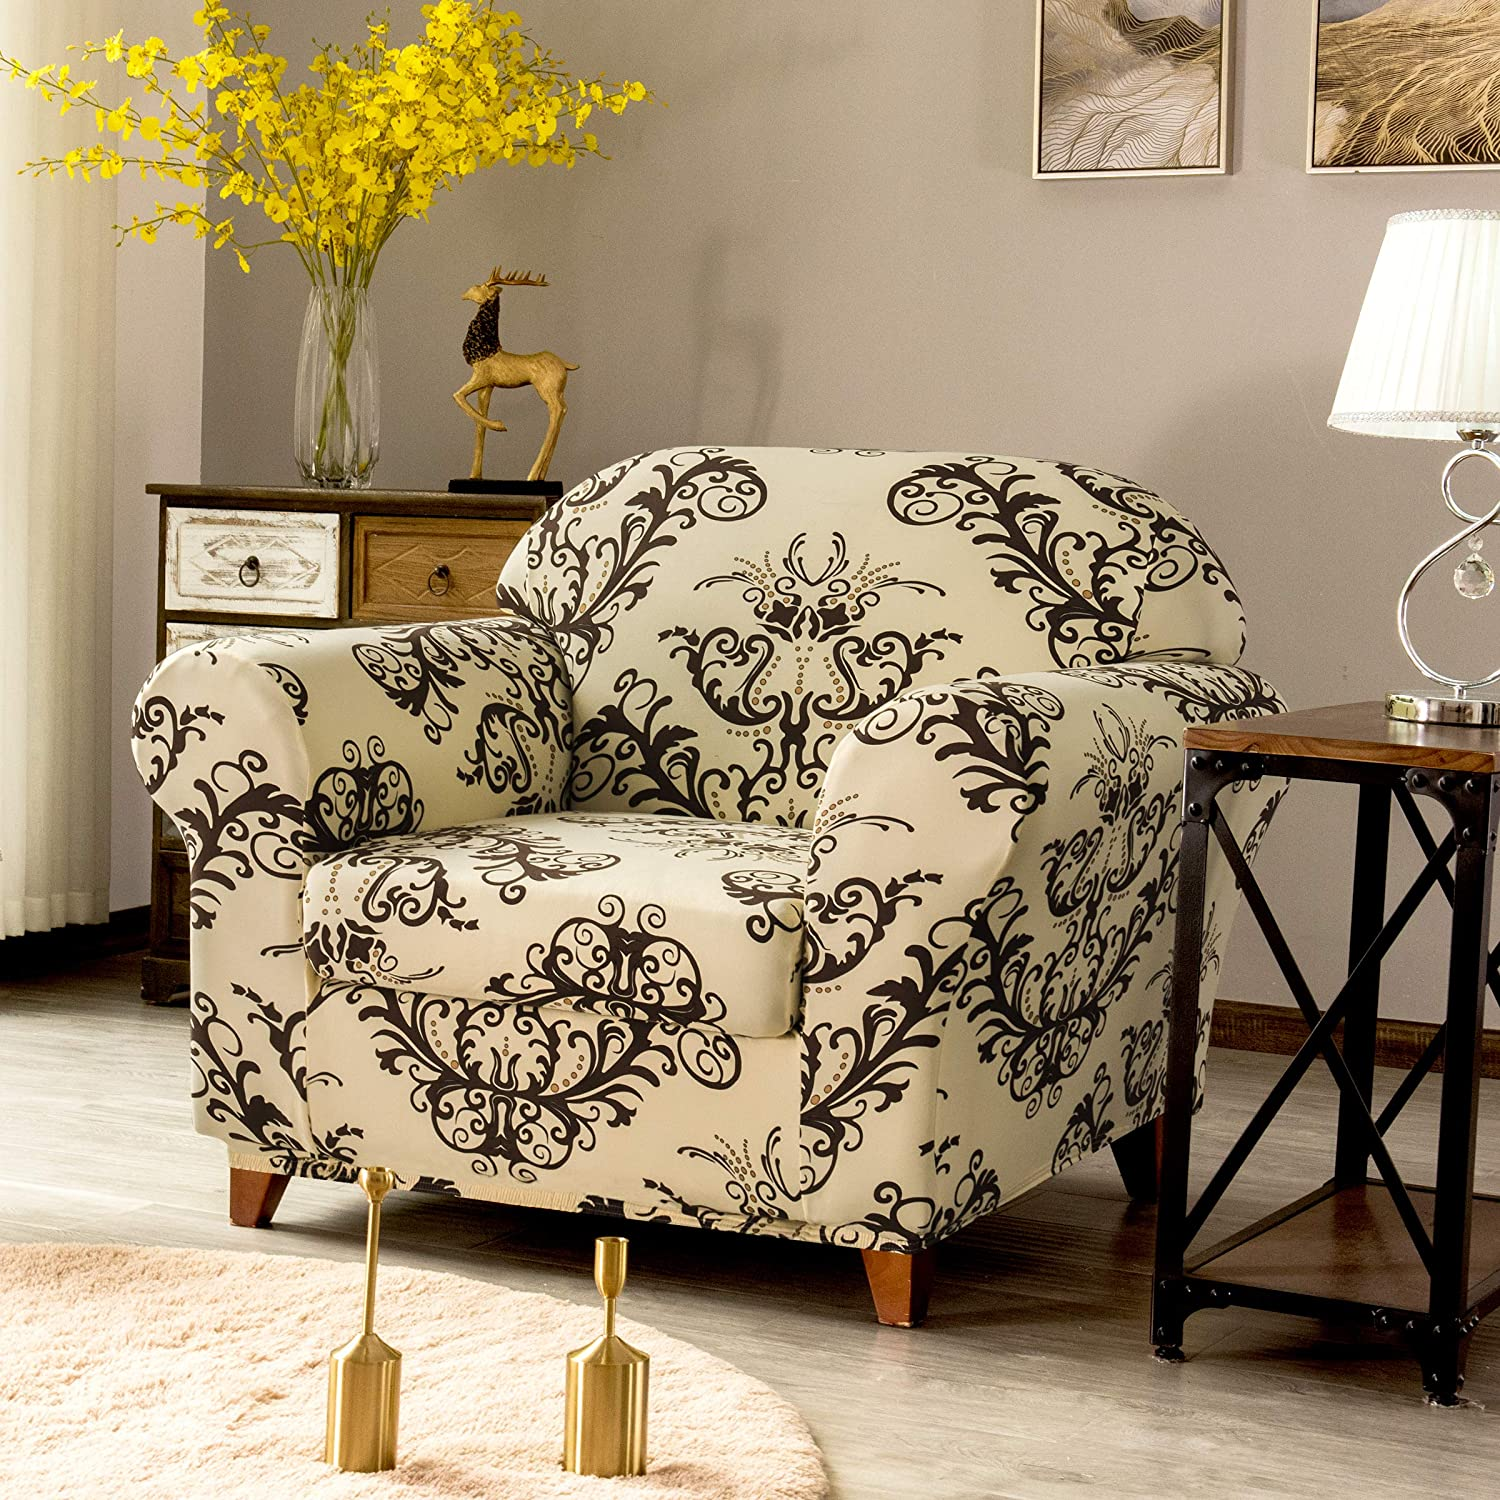 TIKAMI 2-Piece Spandex Printed Fit Stretch Sofa Slipcovers Spandex Washable Furniture Protector with Cushion Cover Chair, Coffee